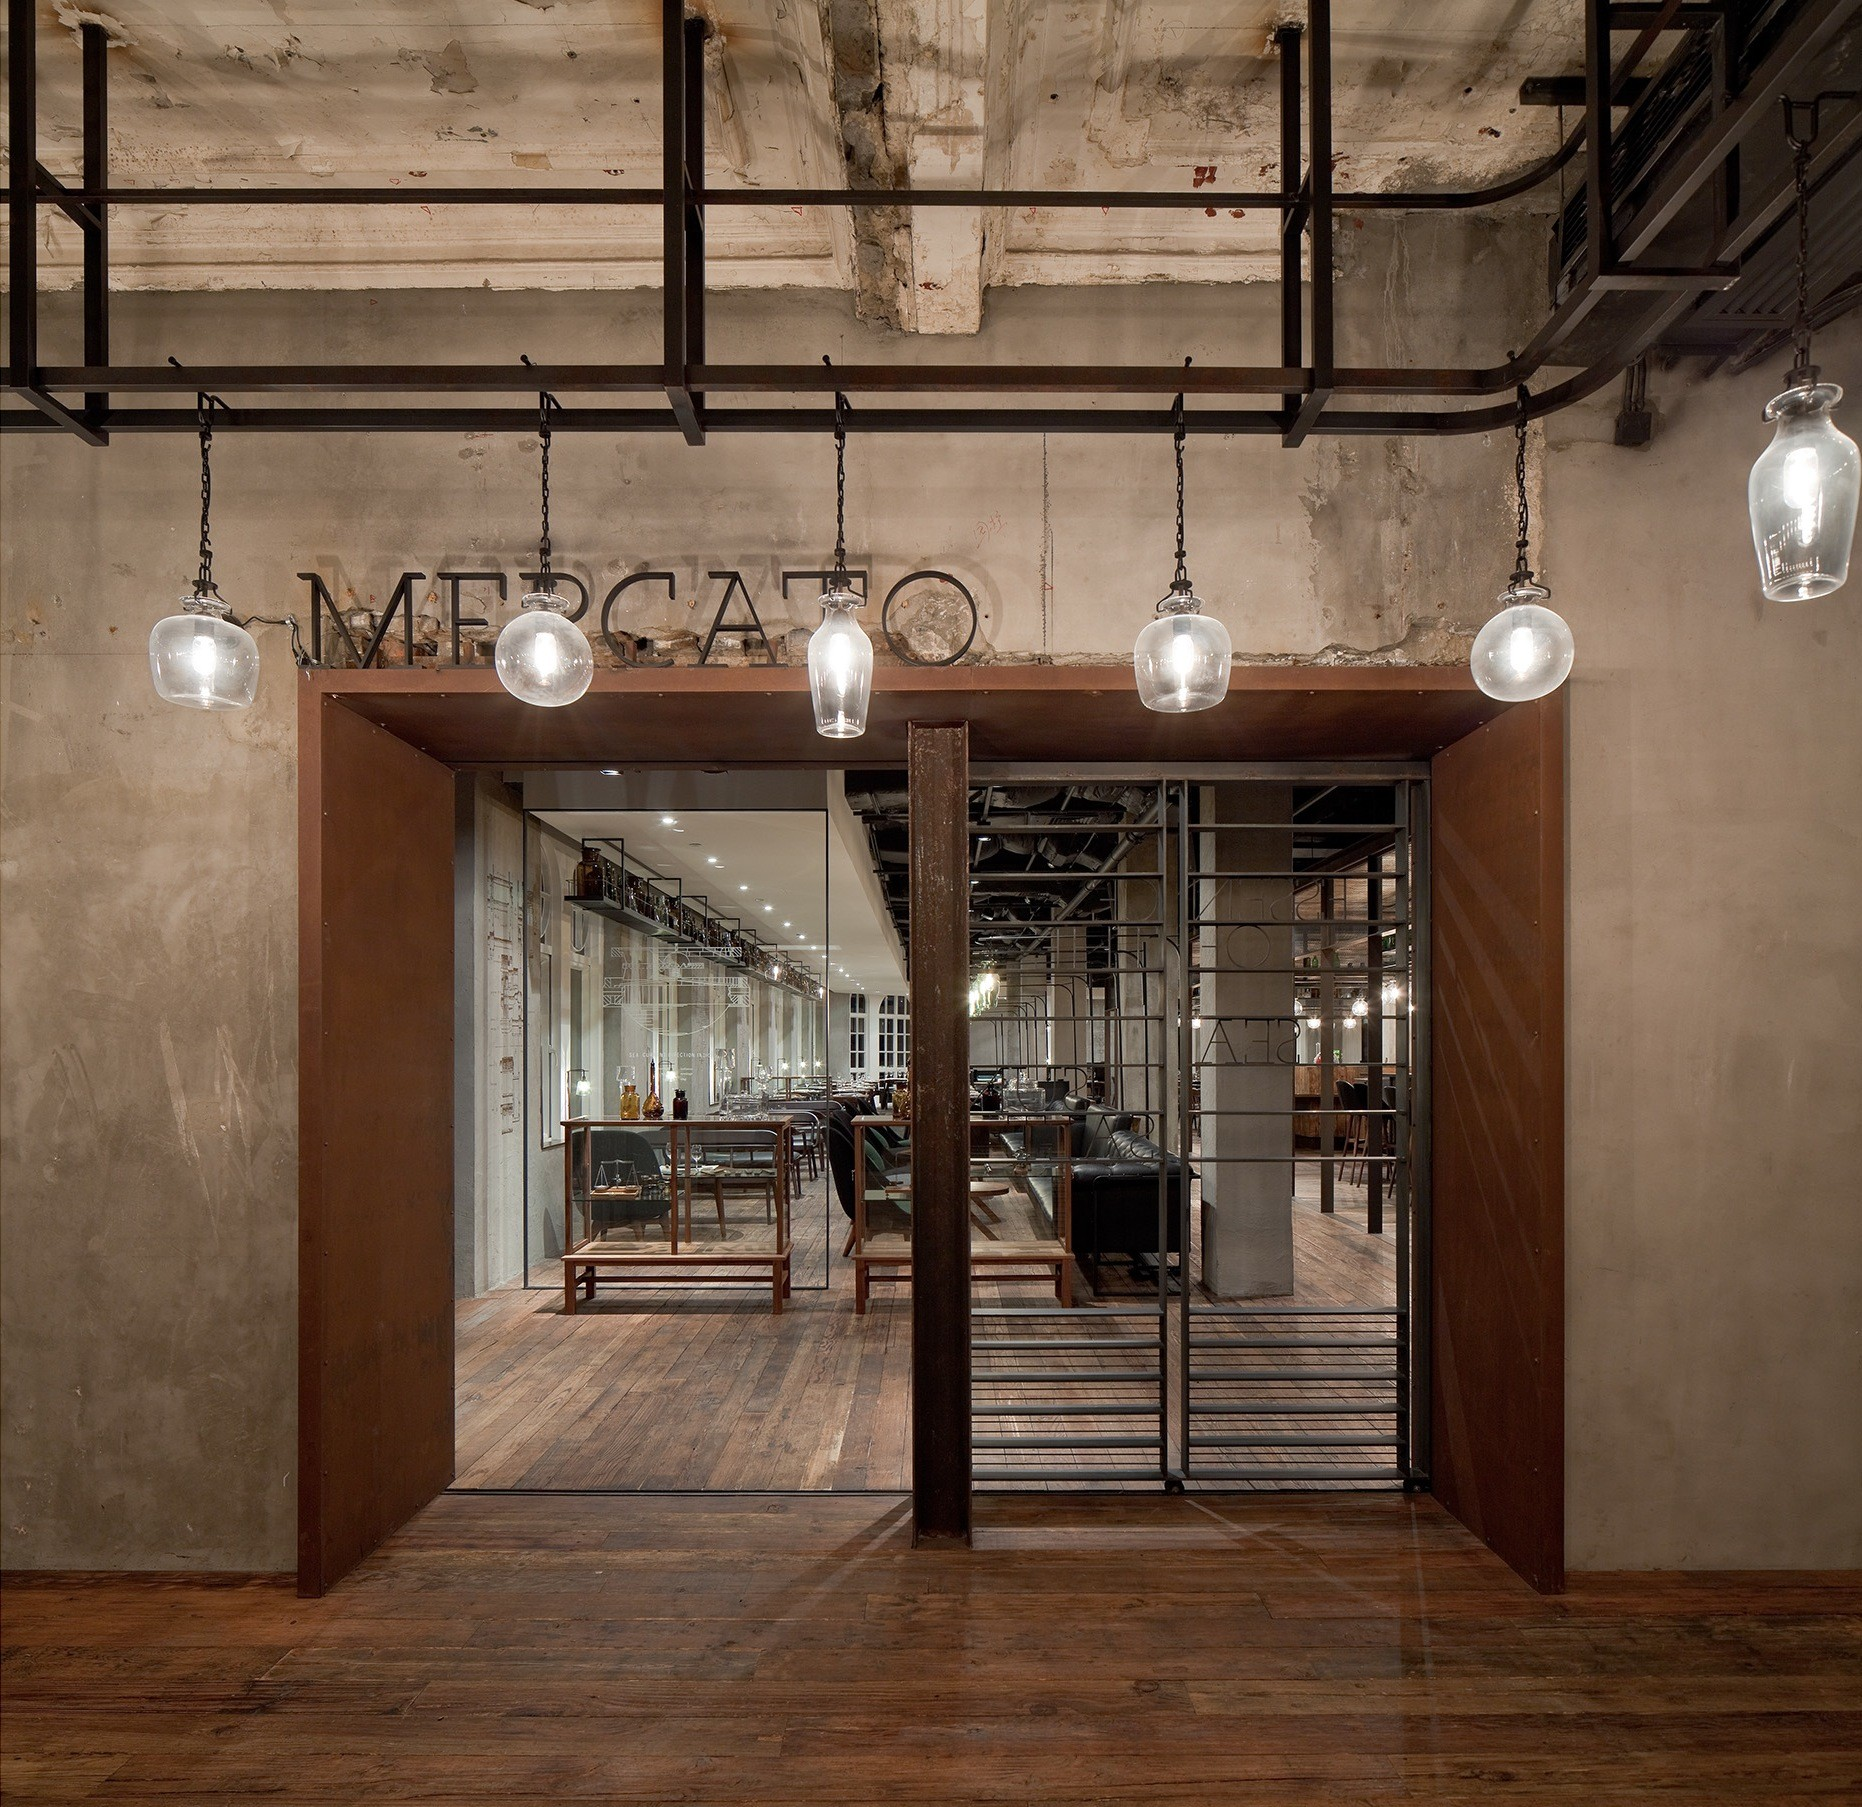 Gallery of mercato neri hu design and research office 5 for Office design research